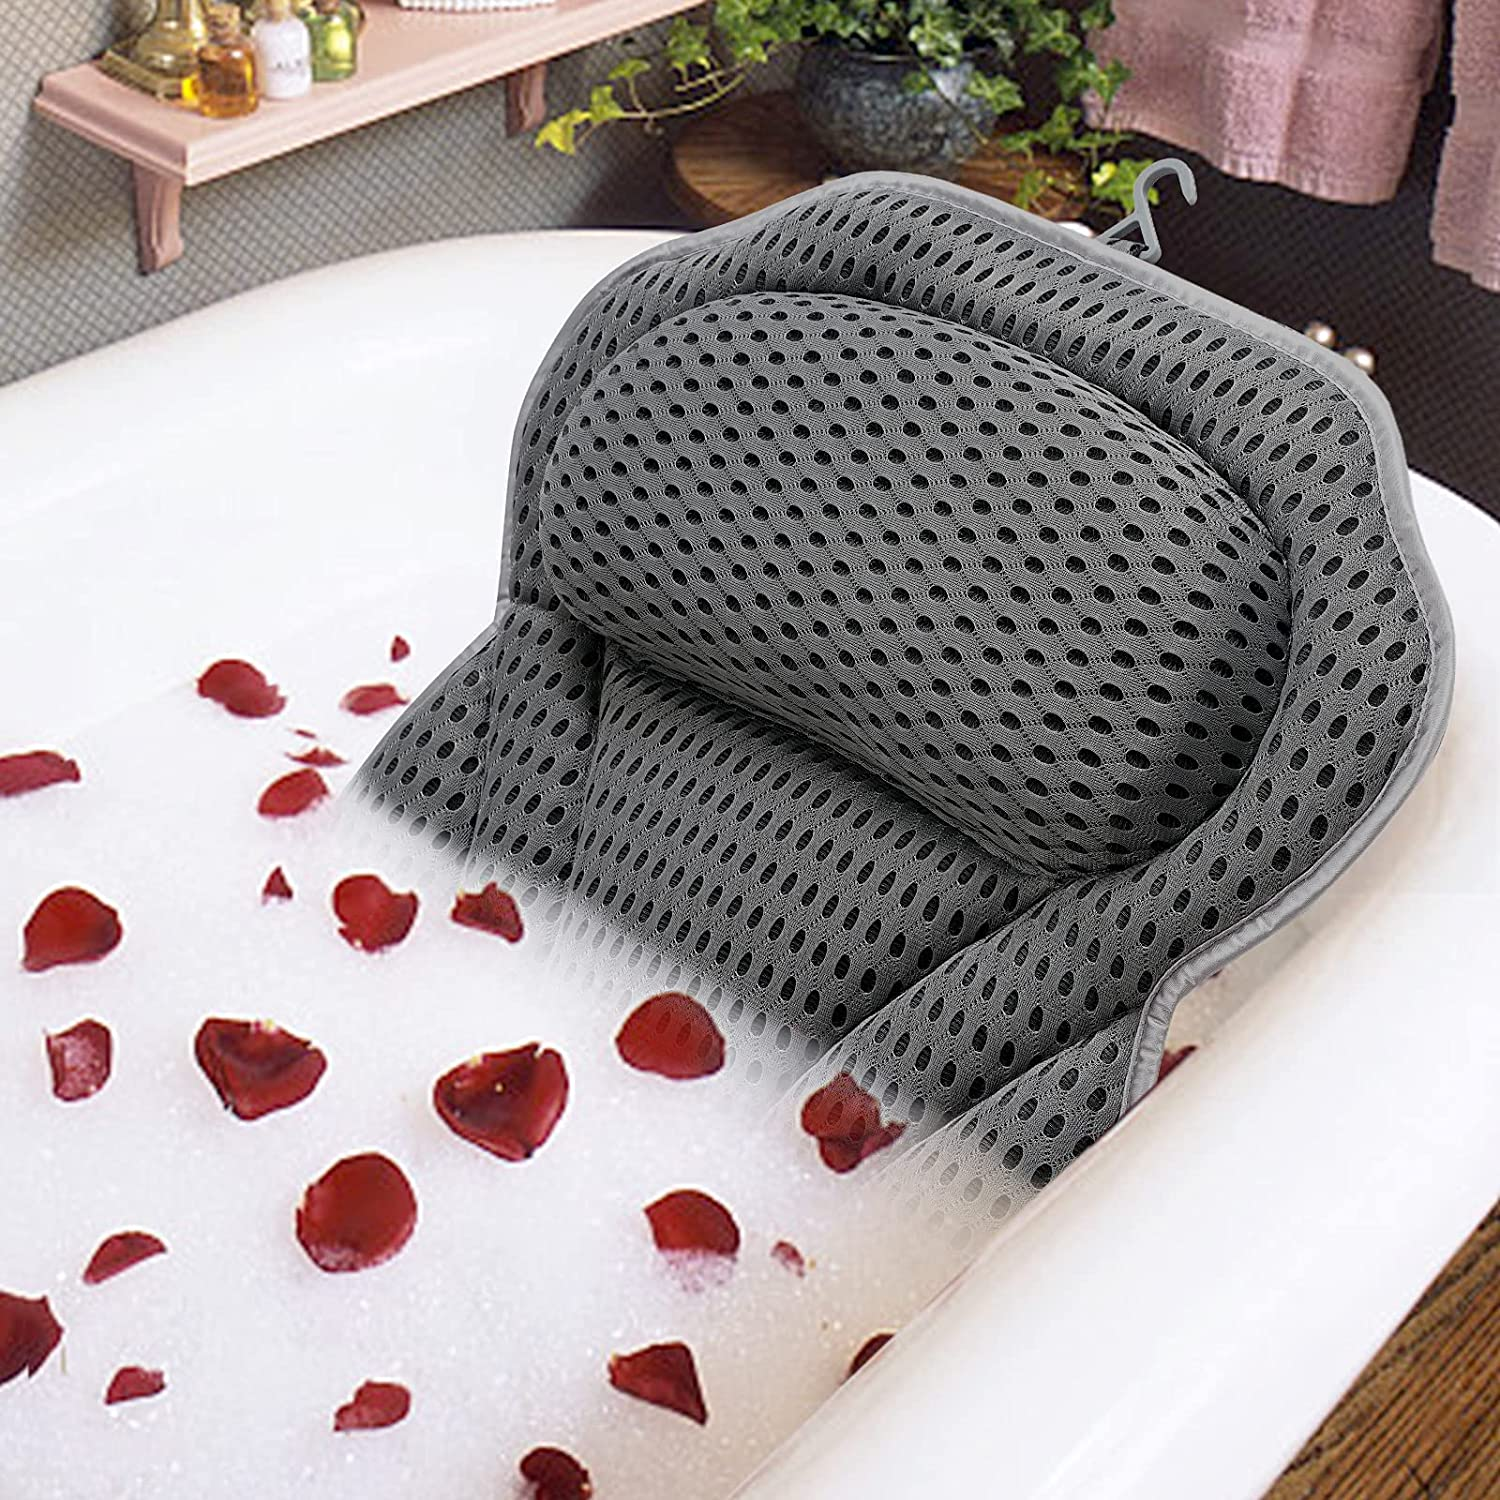 Luxury Bath Pillow Bathtub Spa Milwaukee Mall with Air Non-s Dealing full price reduction 4D Mesh and